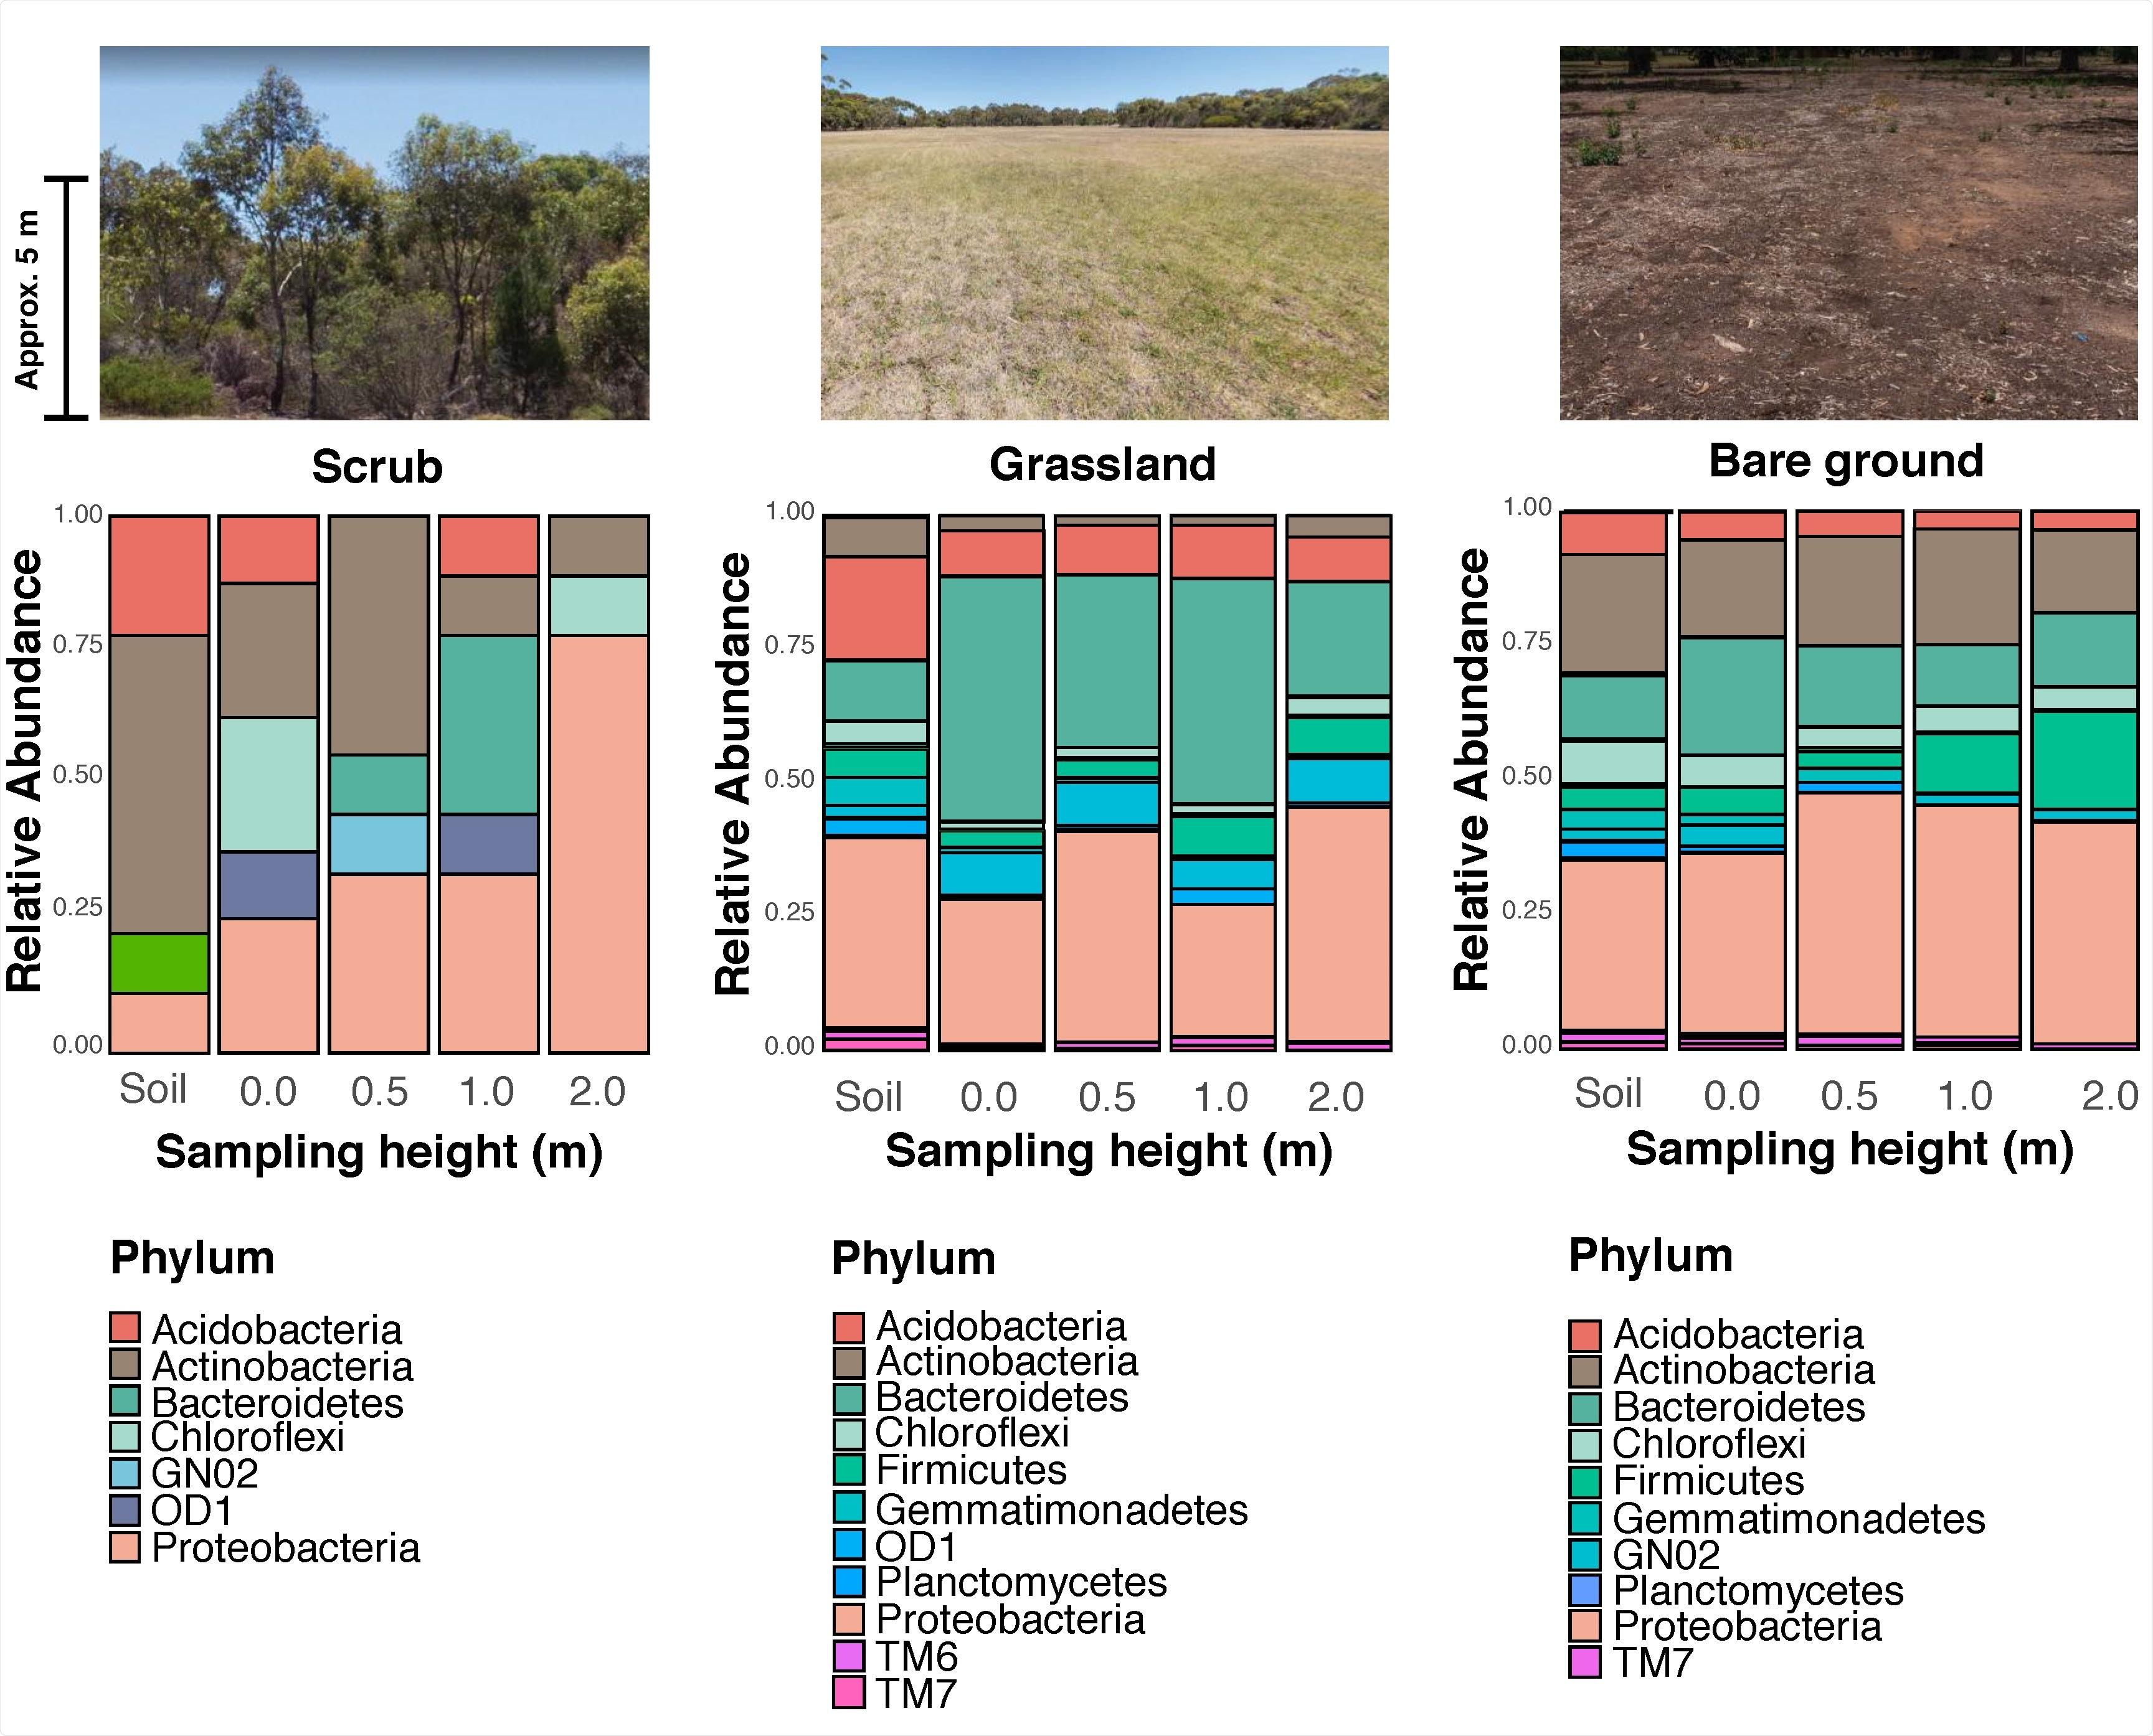 Profile of bacterial communities from each habitat at the phylum level. The coloured area of each bar represents the relative abundance of the corresponding phylum over 1%. The X-axis displays sampling heights: soil, 0.0 m, 0.5 m, 1.0 m, and 2.0 m (from left to right). The photographs above the plots show examples of each habitat used in the study (photographs by authors).